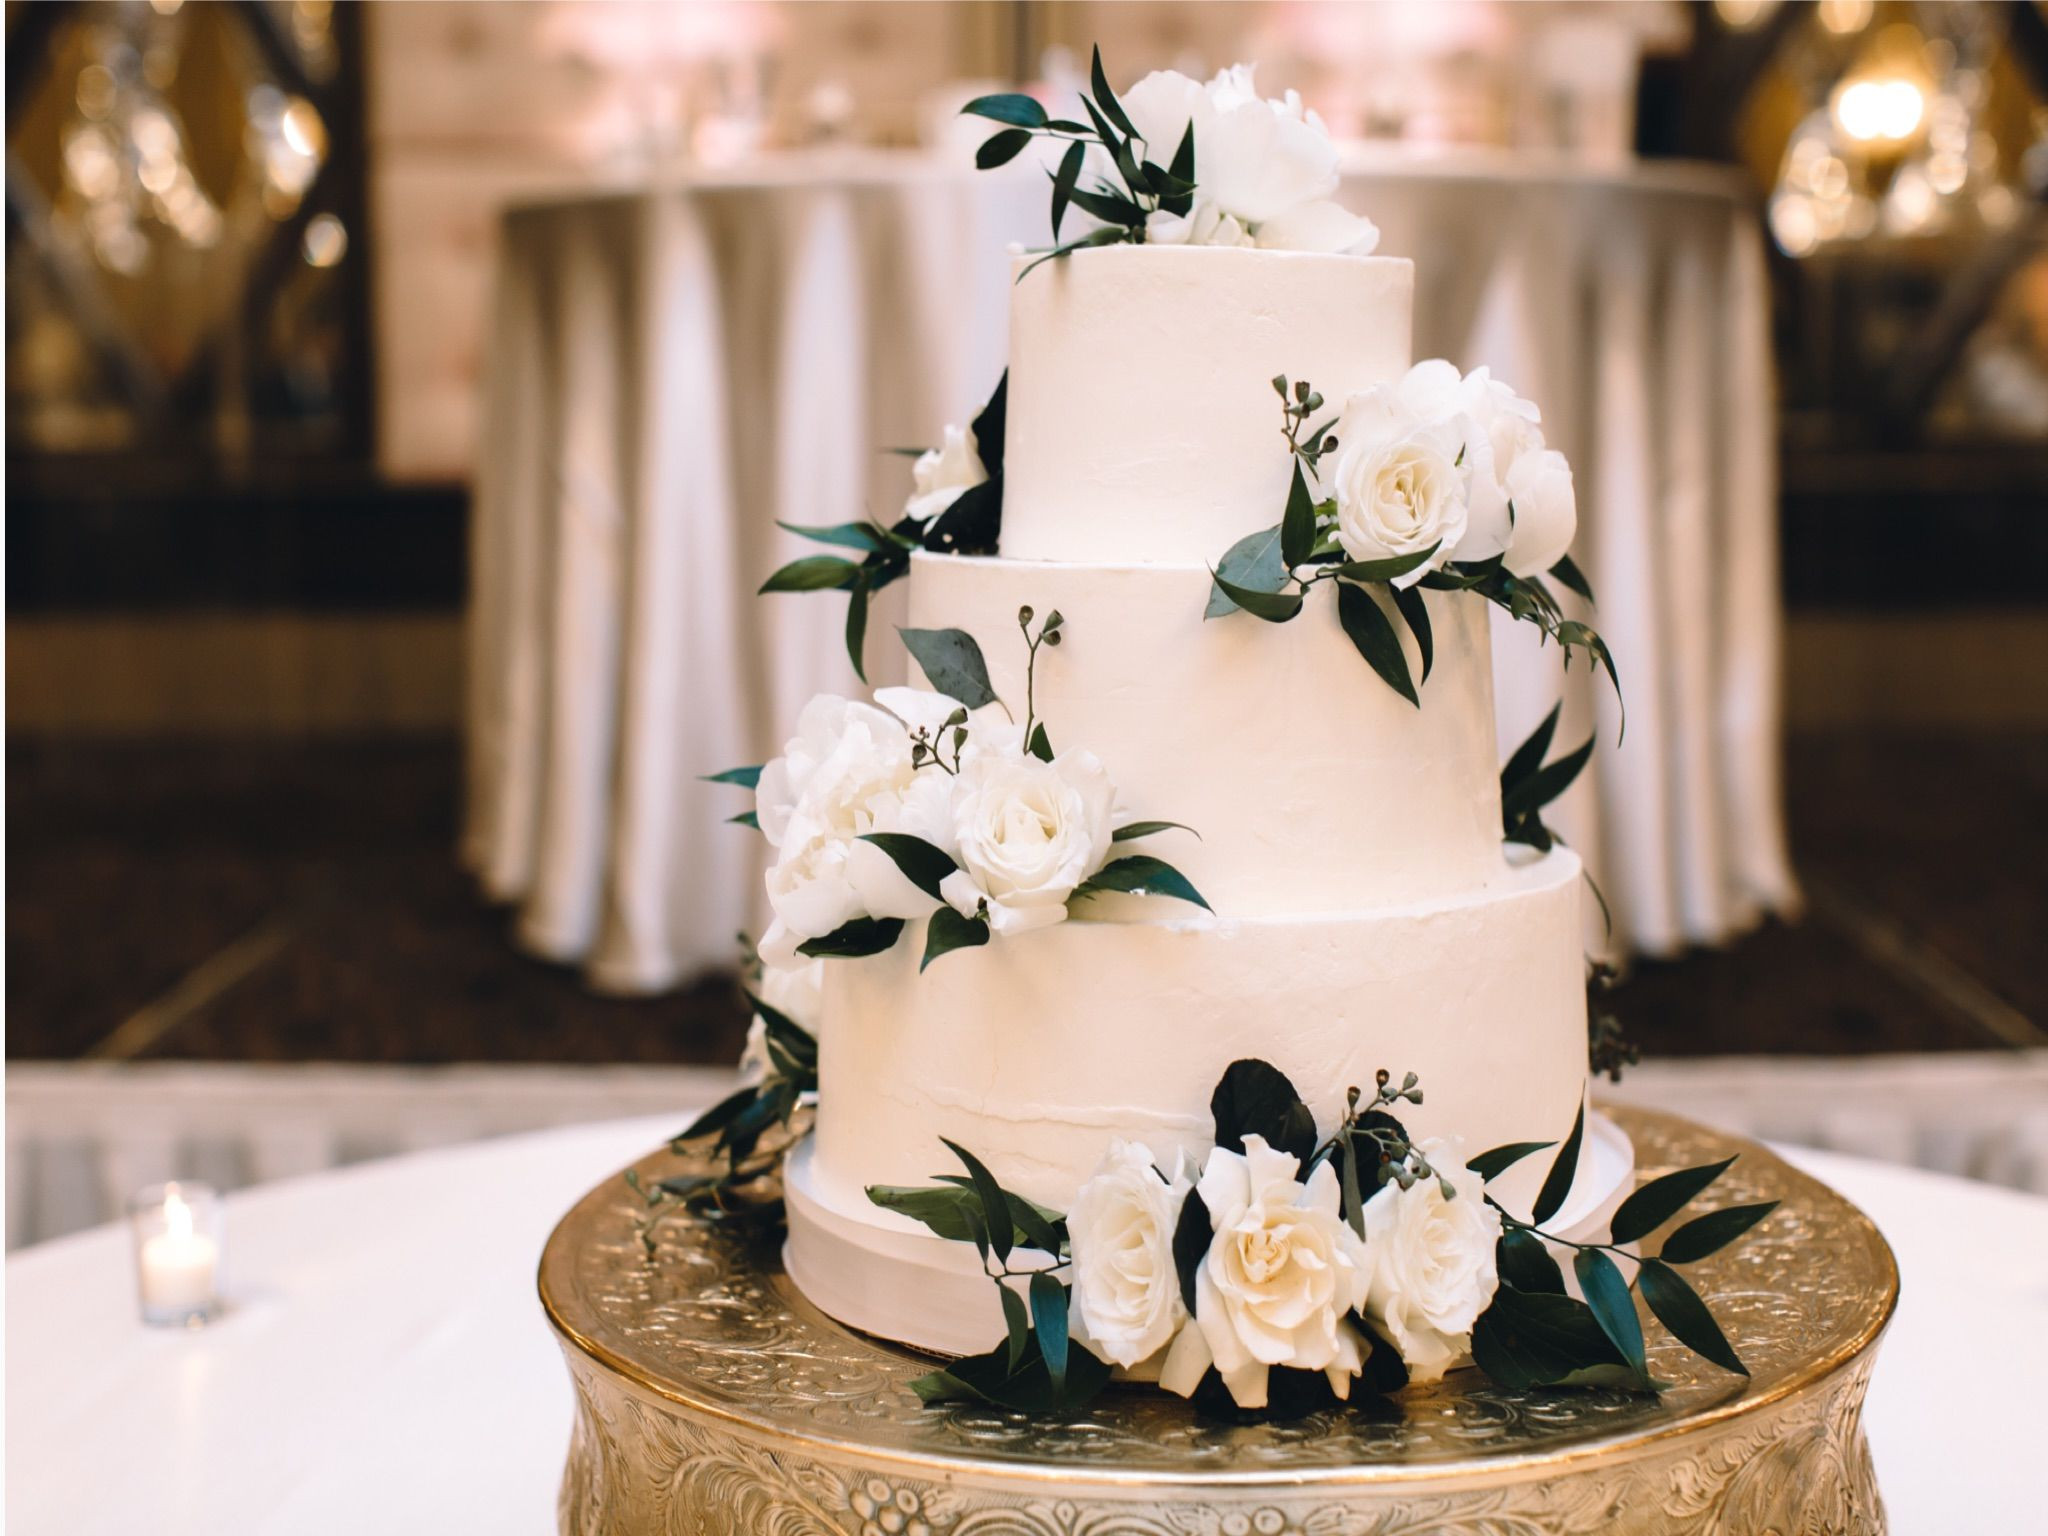 Local Bakeries For Wedding Cakes  Local Wedding Cake Bakeries